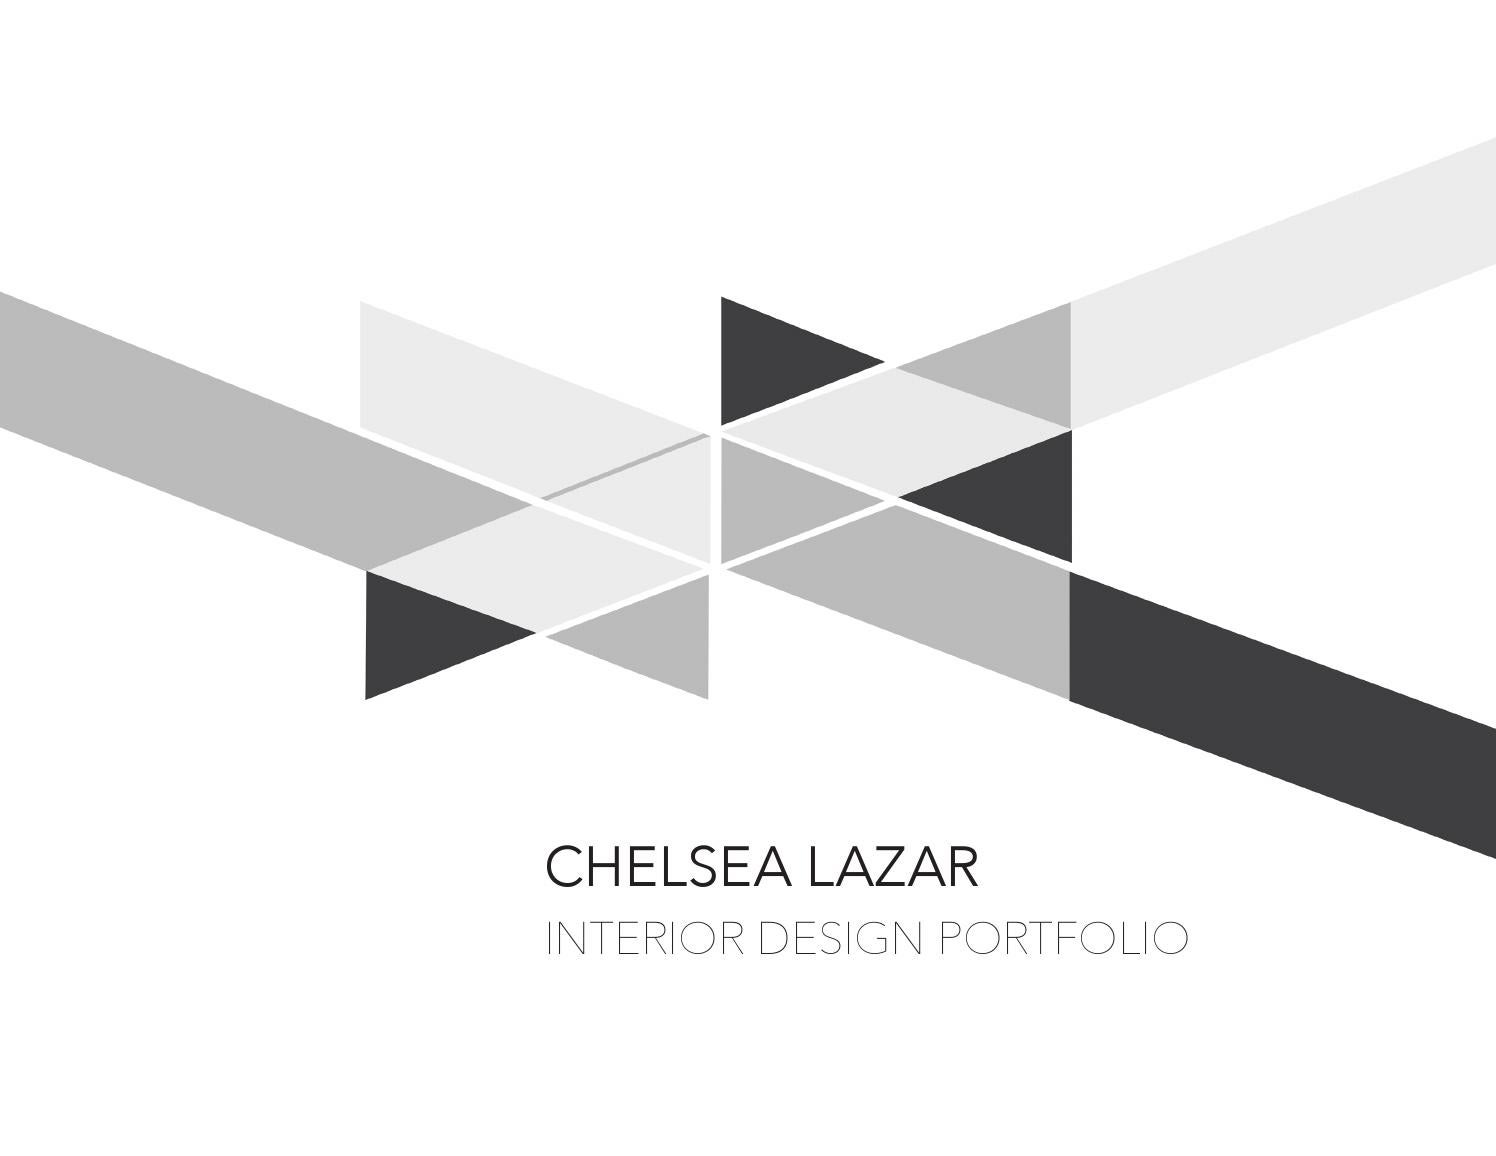 Book Cover Design Near Me : Interior design portfolio by chelsea lazar issuu